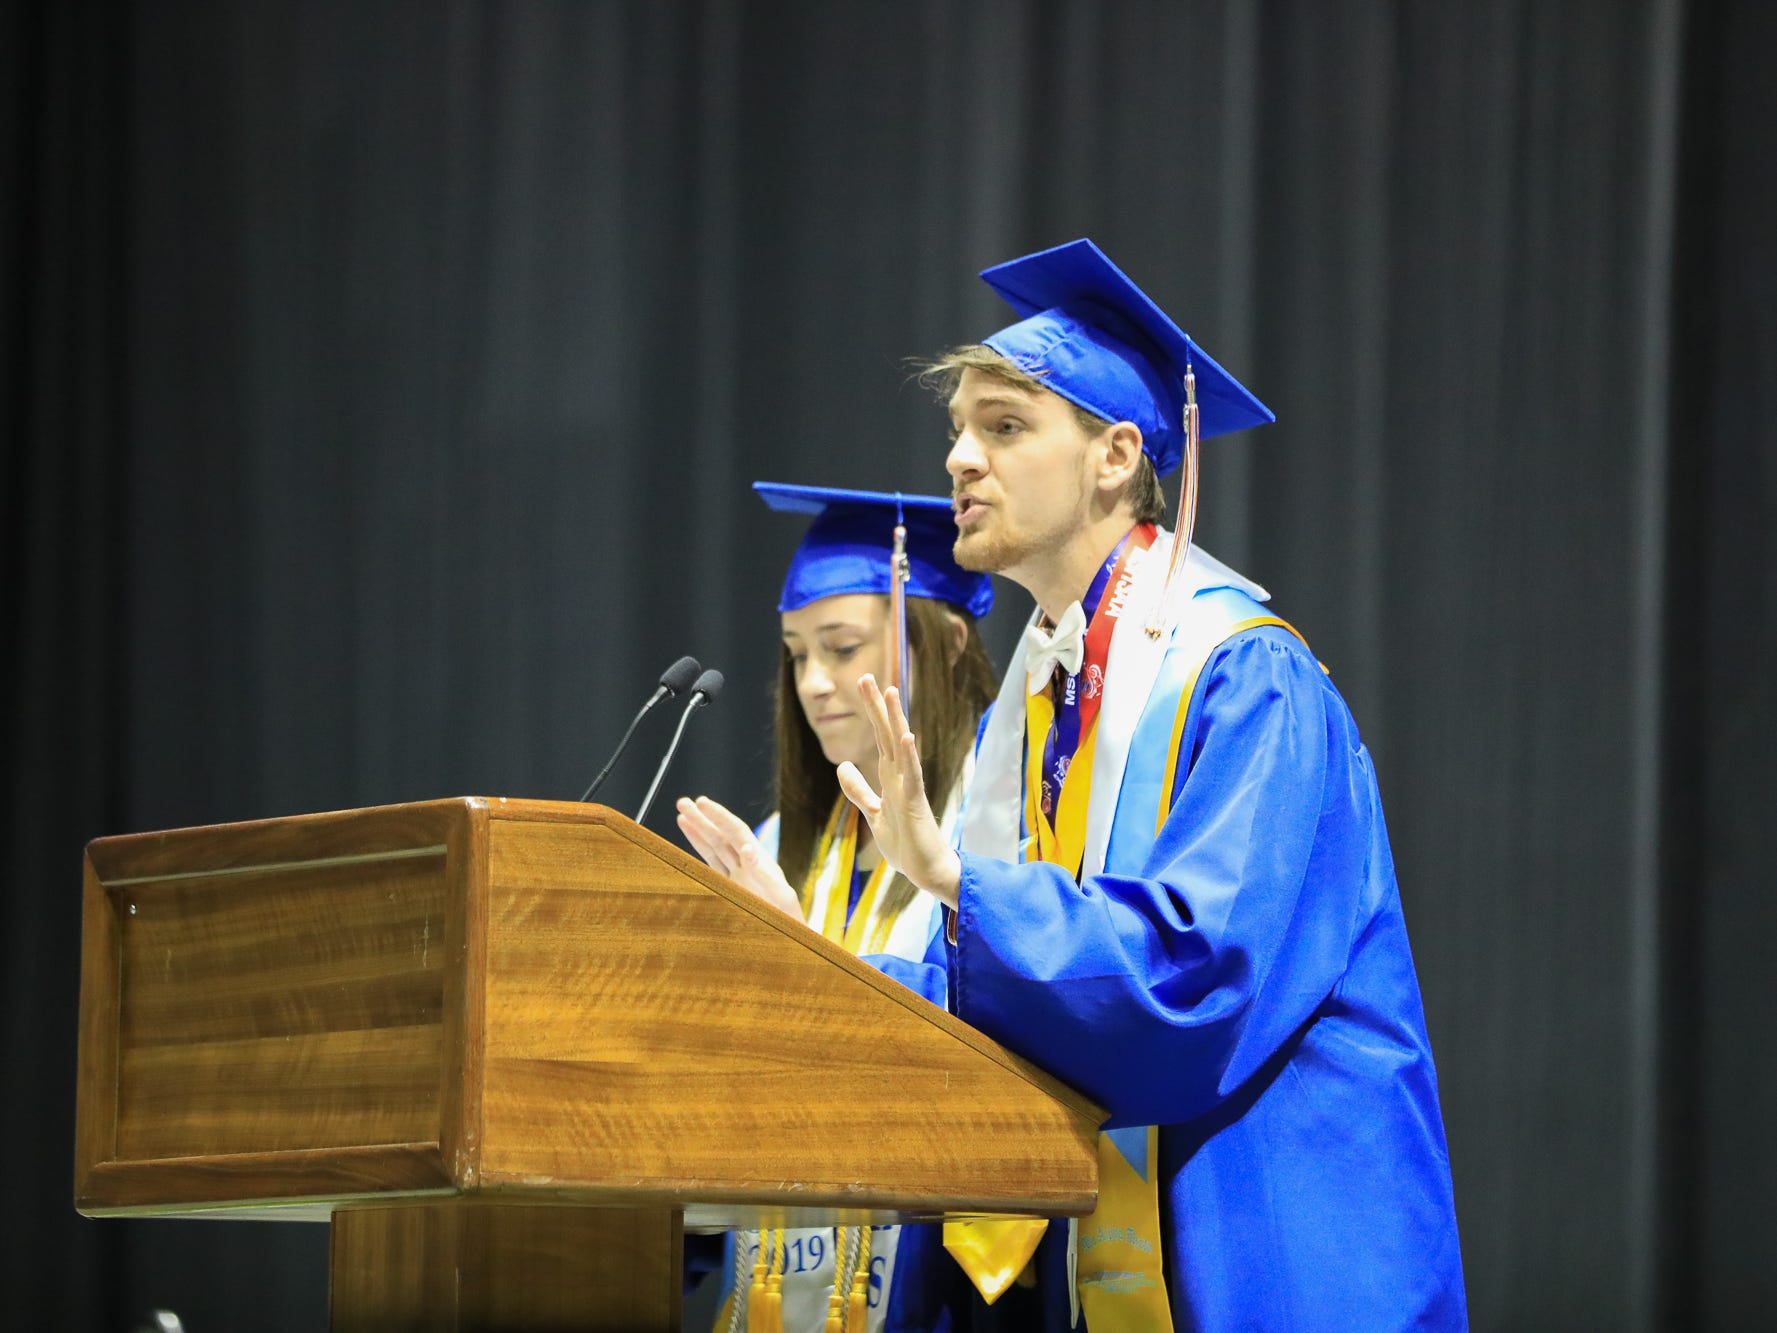 Hillcrest High School Graduation ceremonies for the 2019 Class took Place Thursday, May 9, 2019 at JQH.